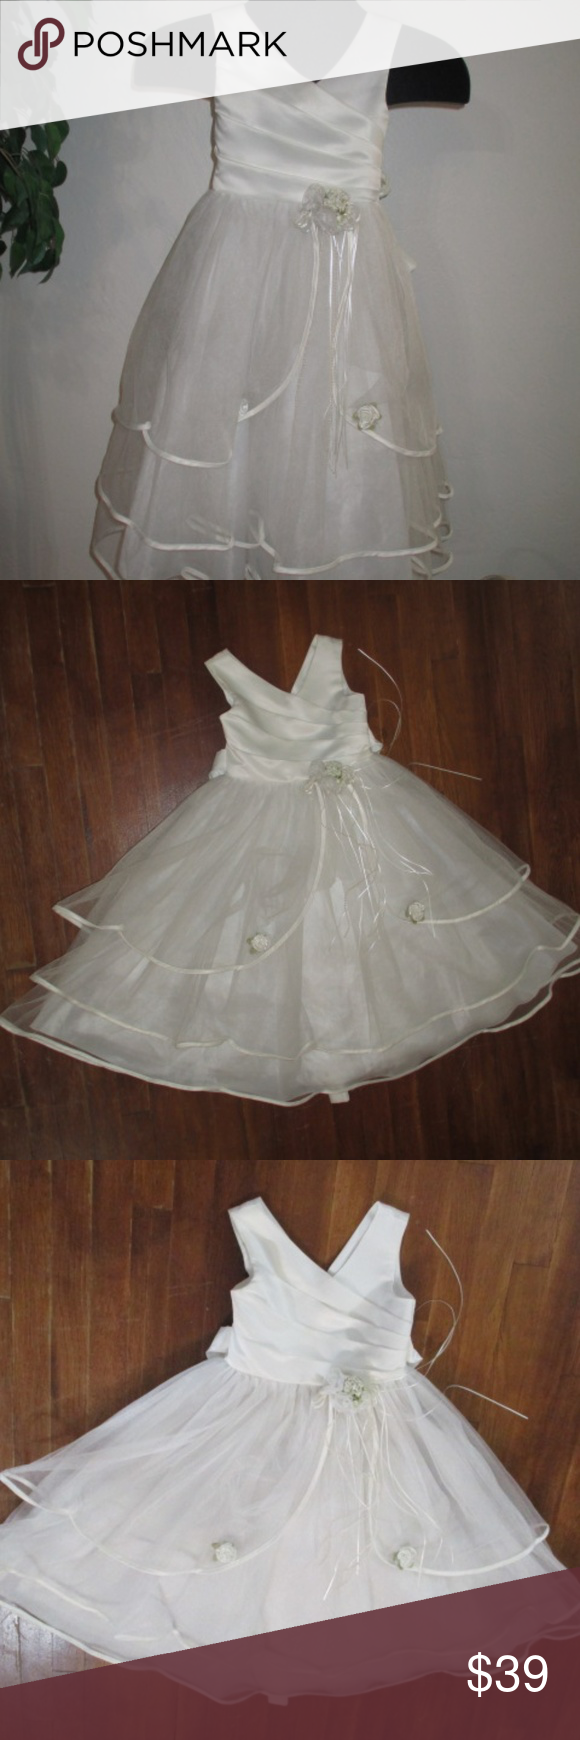 2d2f0f5f49fb Cinderella Vintage Flower girl 1st Communion Dress No offers thank you.  Vintage- made in